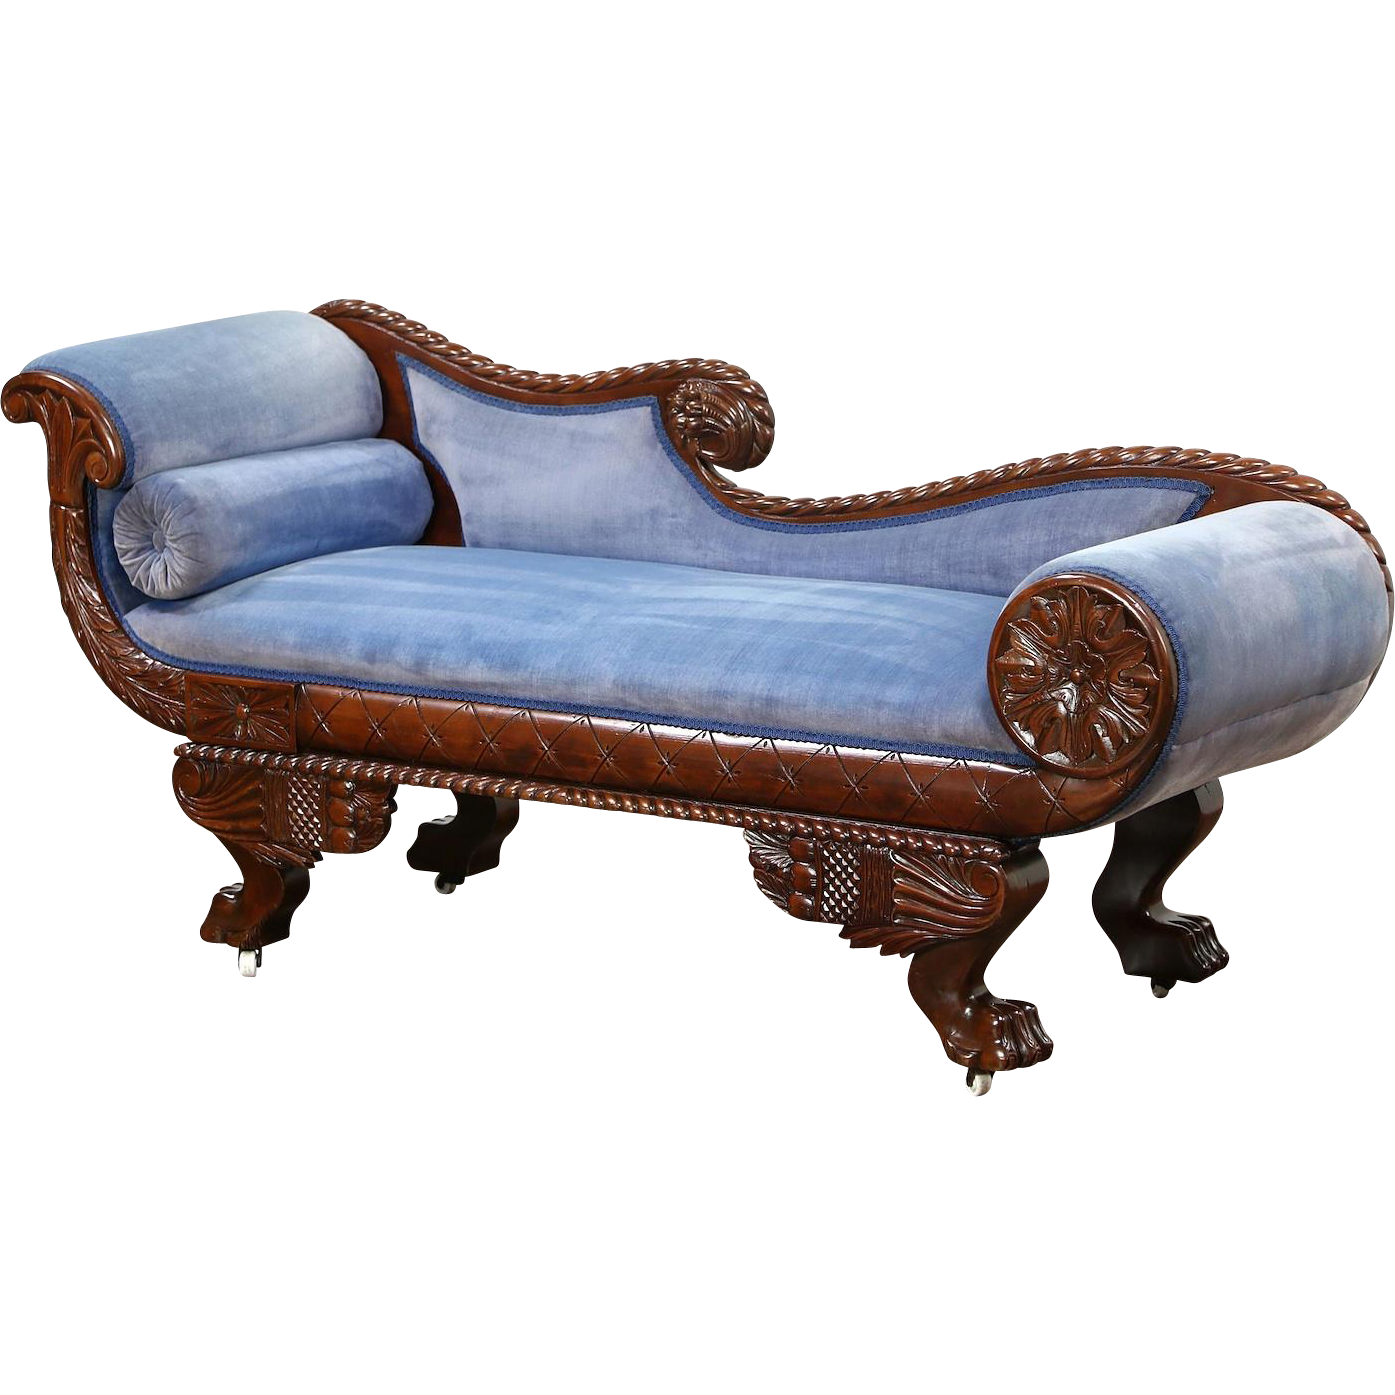 Empire 1895 Antique Chaise, Recamier, Lounge or Sofa, Carved Paw Feet